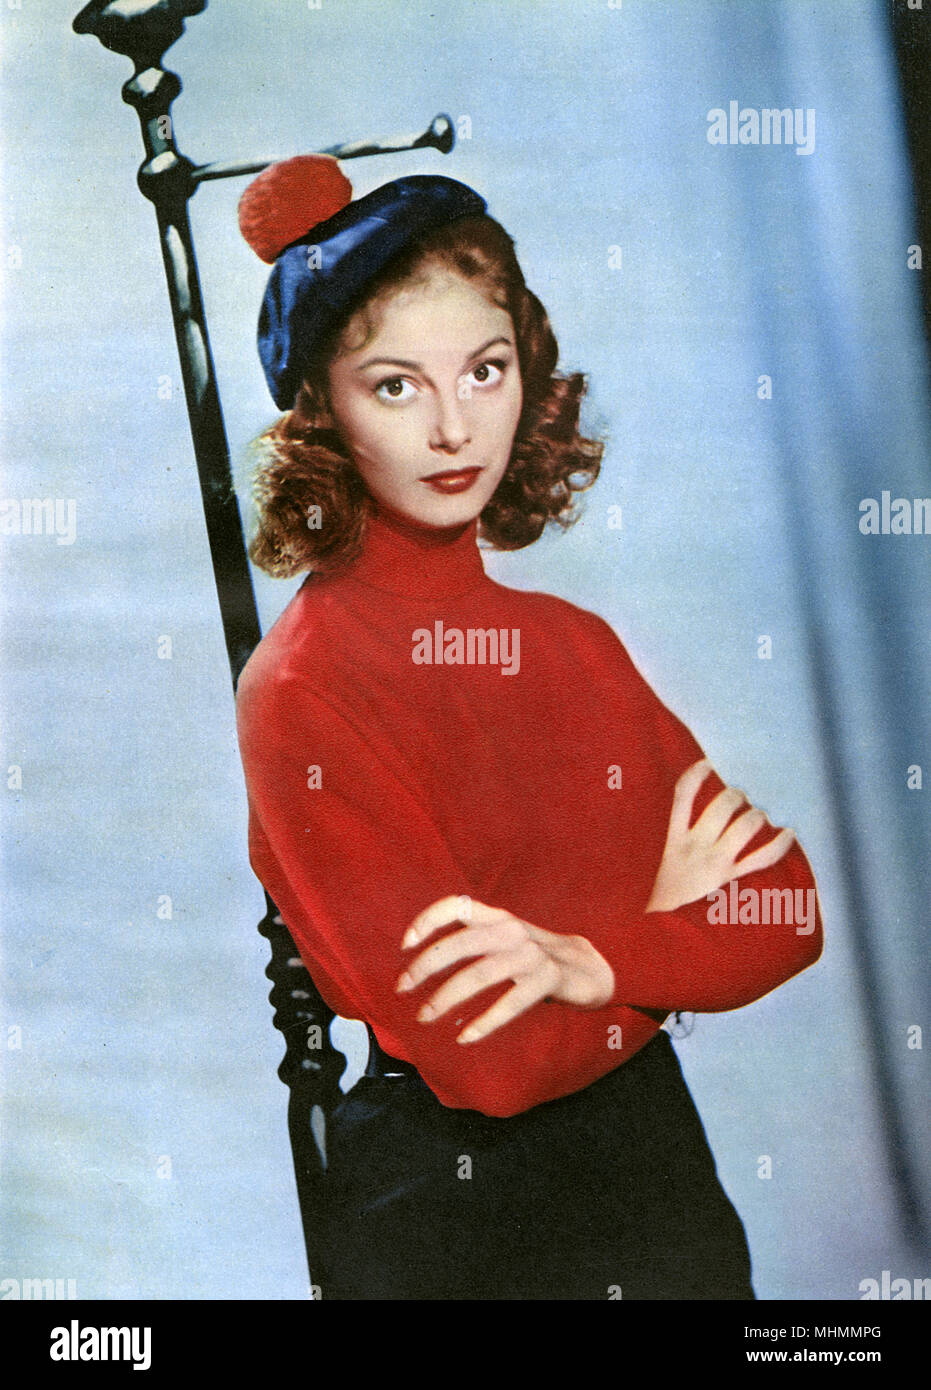 Pier Angeli, Italian born television and film star, poses for photo after film.     Date: 1944-1945 - Stock Image